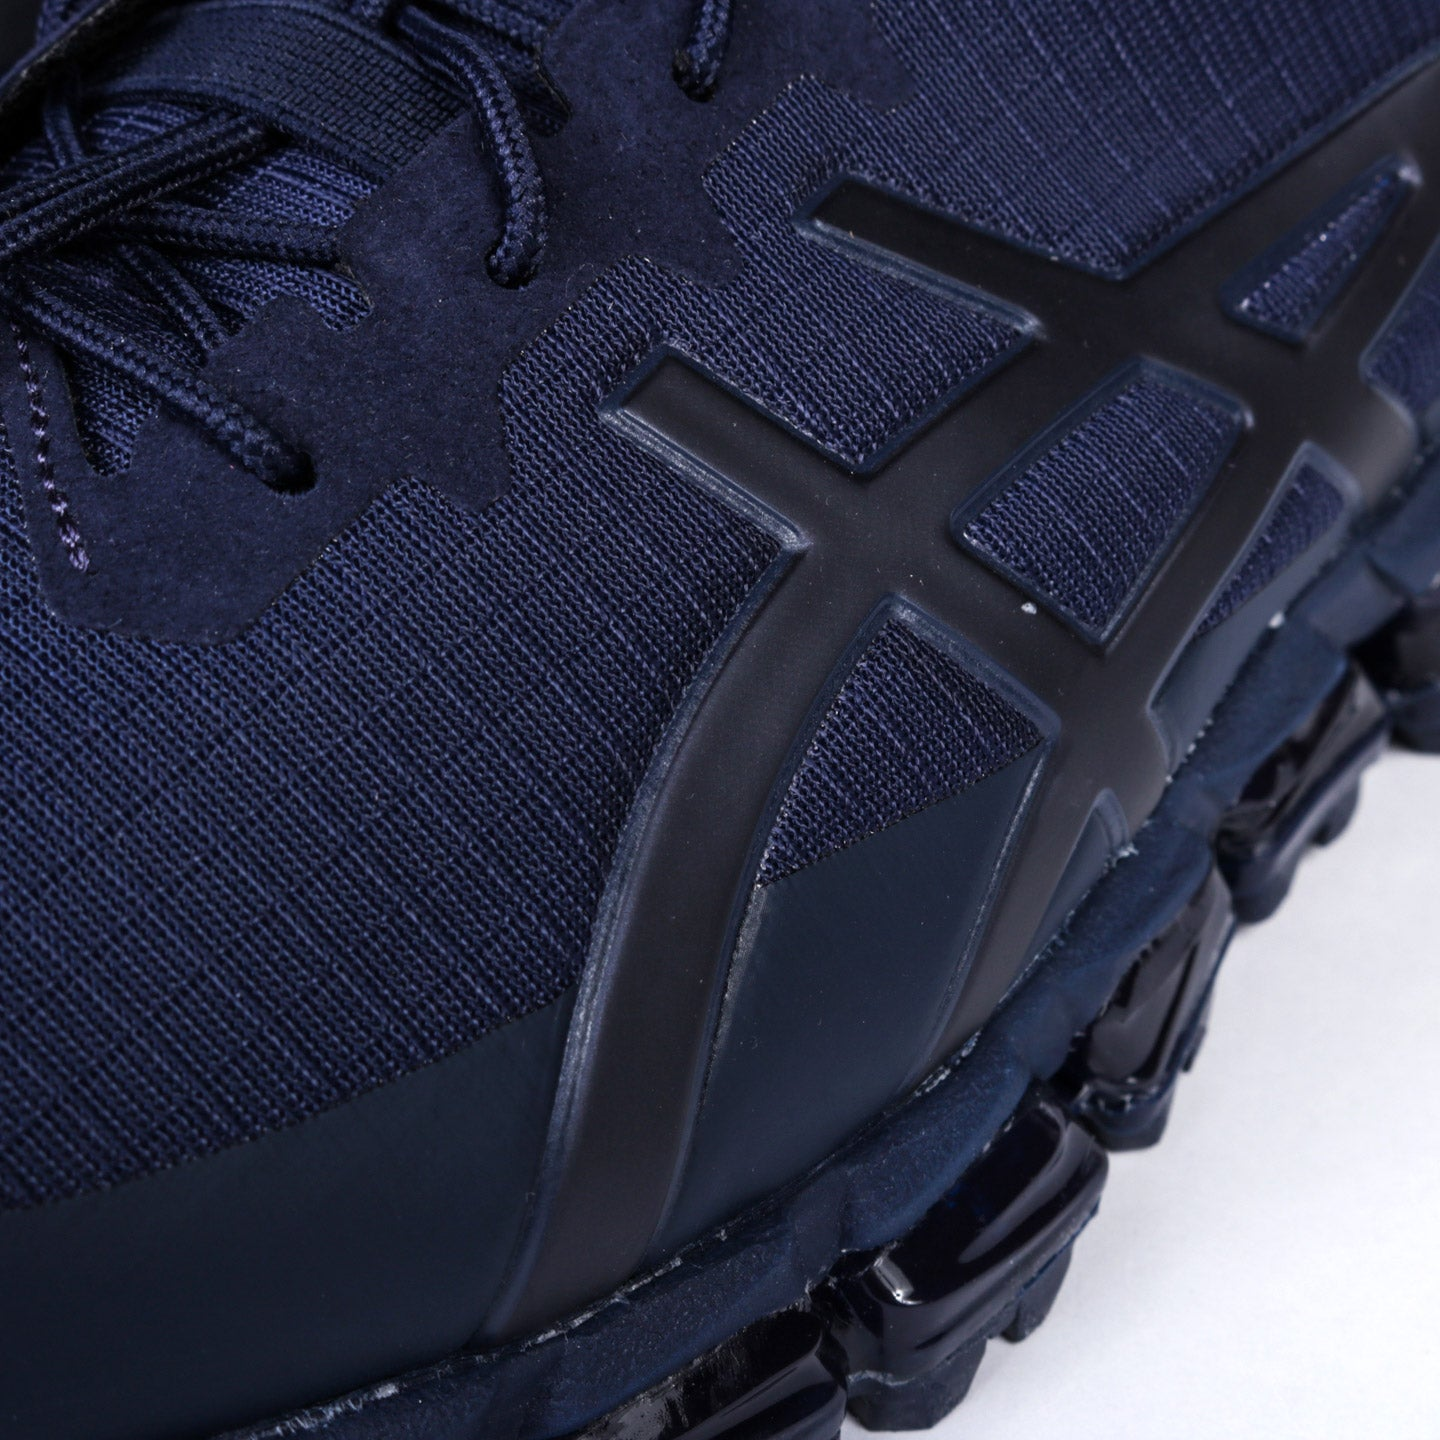 ASICS REIGNING CHAMP GEL-QUANTUM 360 5 TRAIL MIDNIGHT